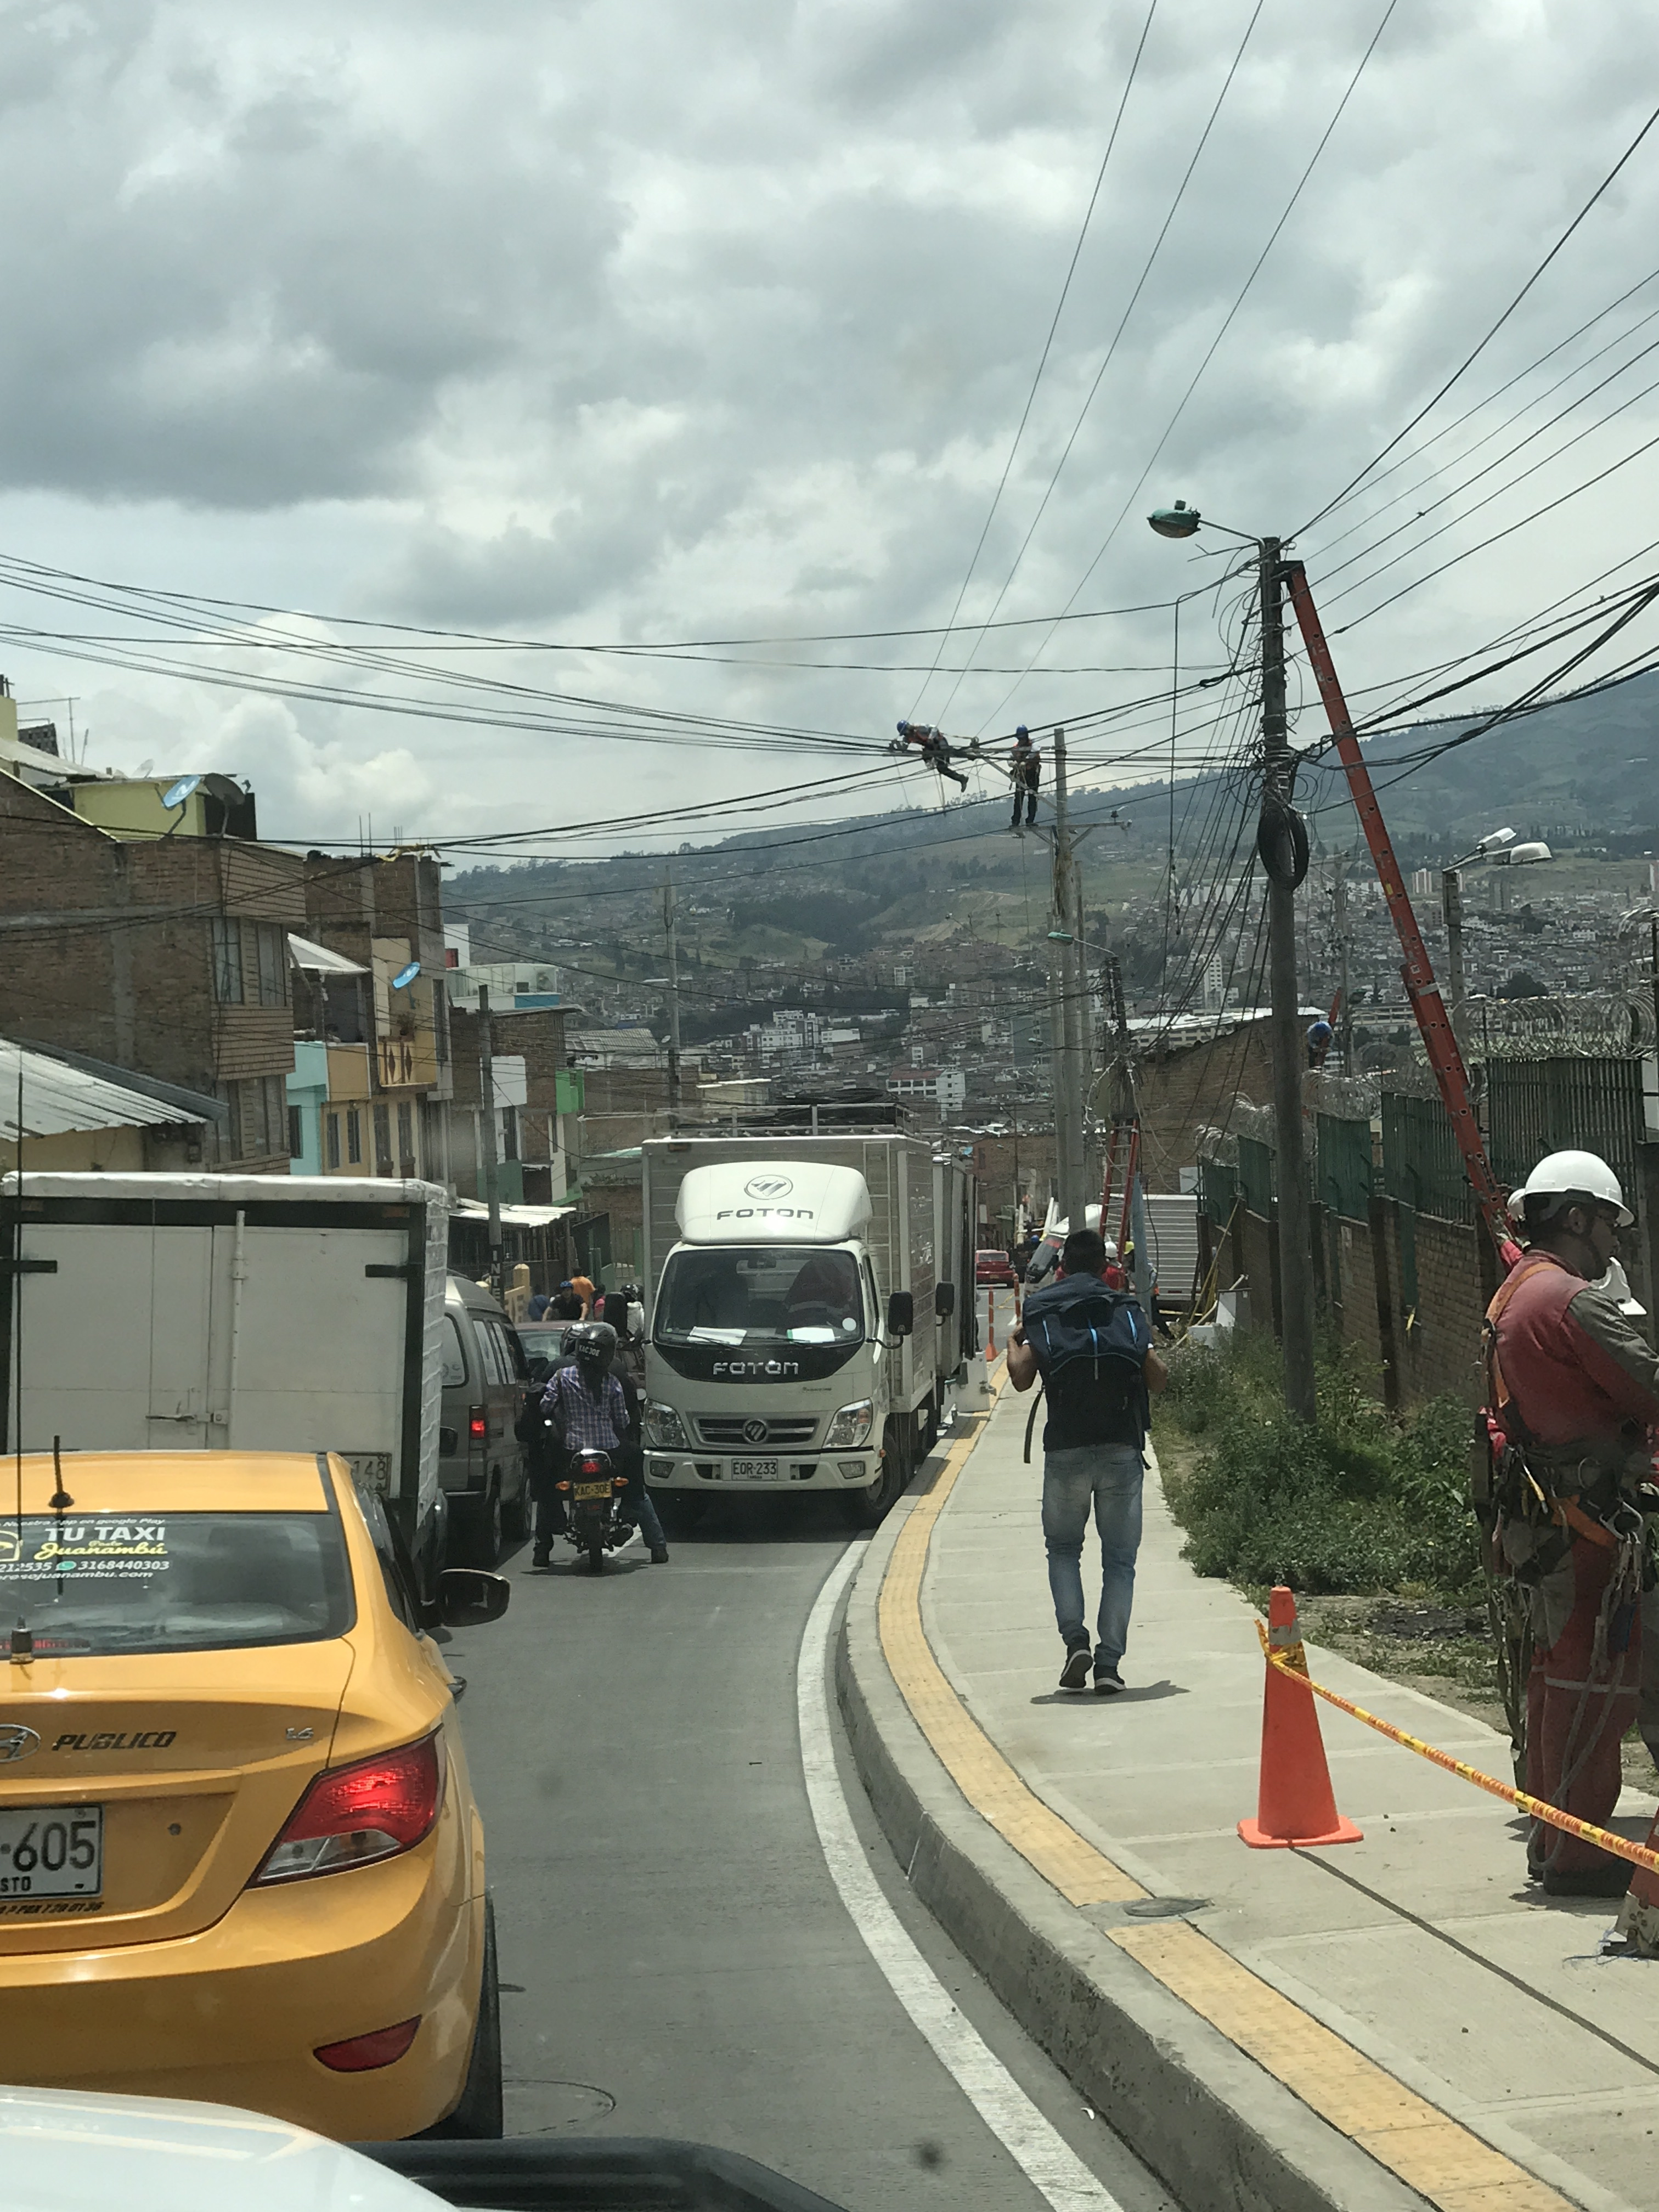 traffic power line repairs.jpg